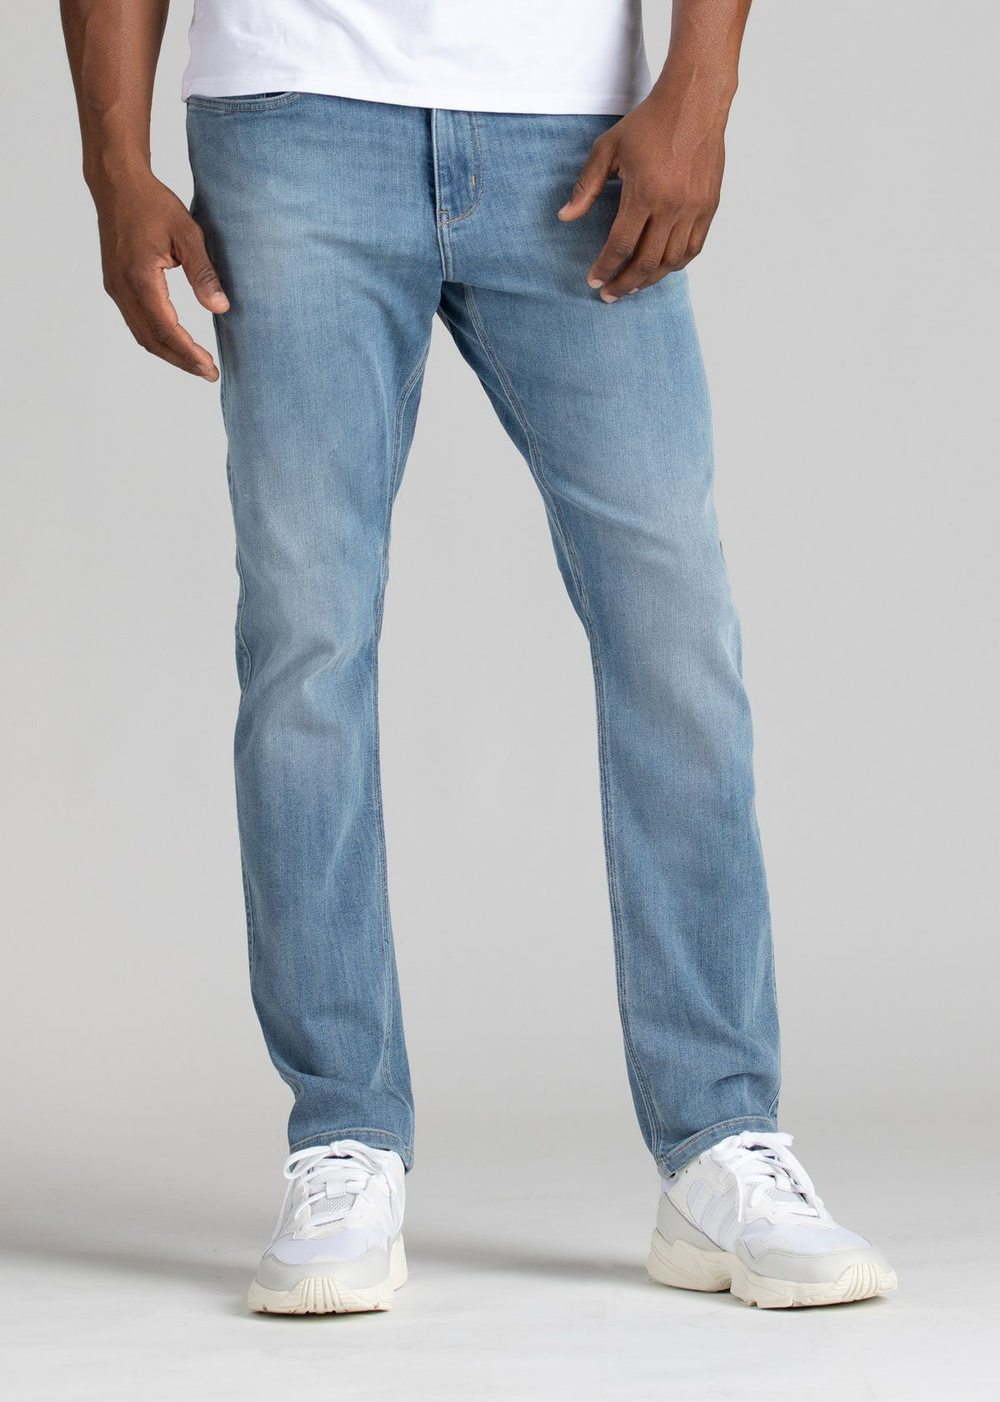 Duer Mens Relaxed Fit Performance Denim - Cascade